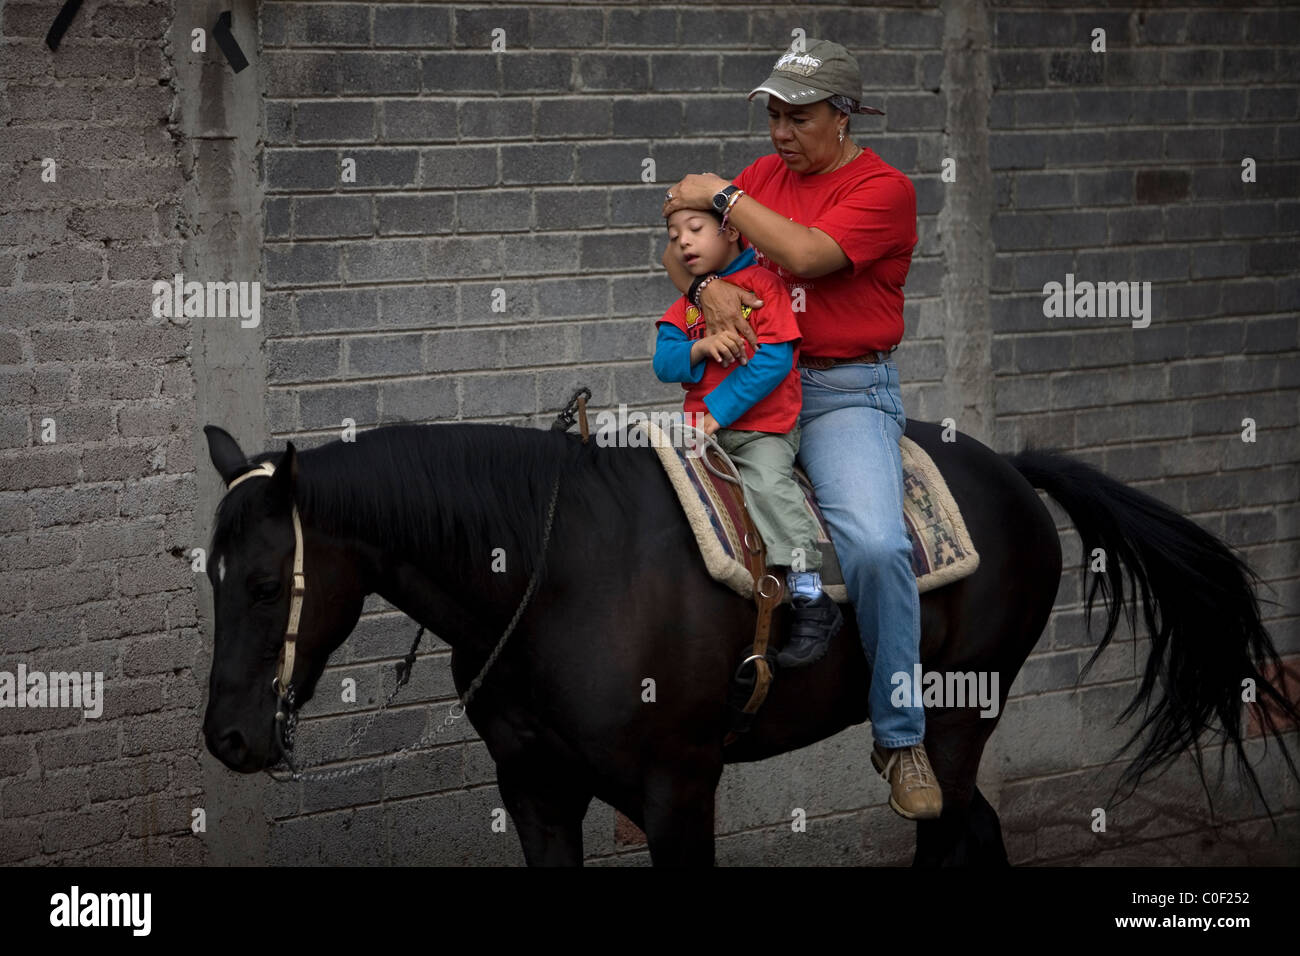 Equine Therapist Guadalupe Pena treats a boy who has infantile cerebral paralysis during his horse therapy session - Stock Image